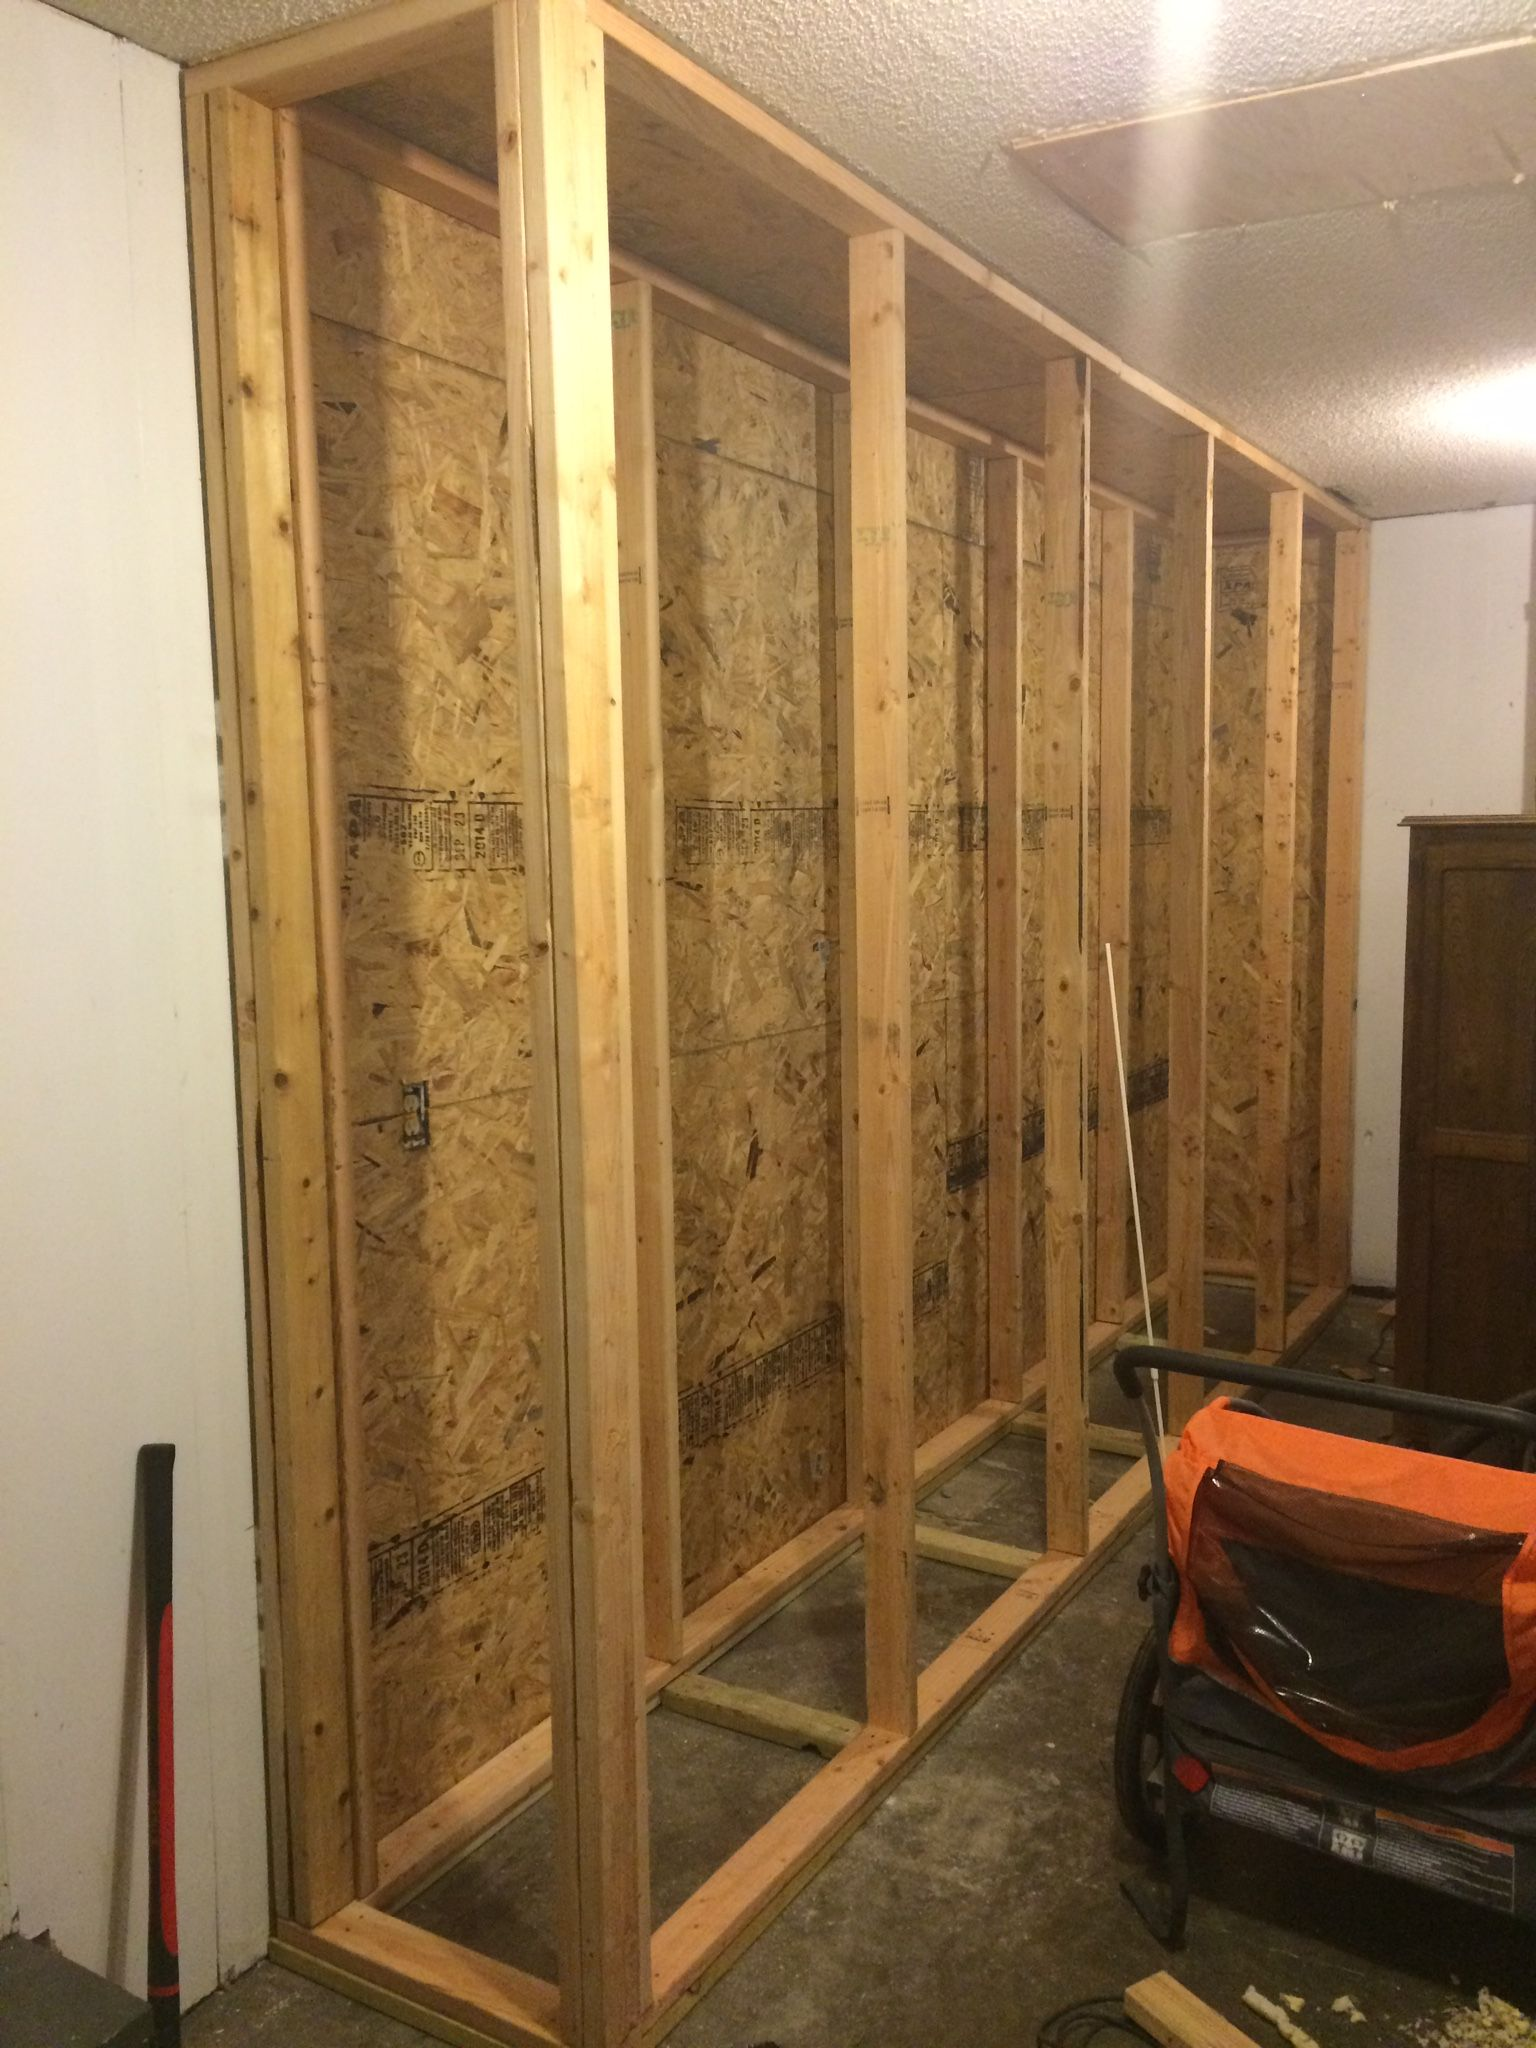 Diy Storage Cabinets For Garage How To Plan And Build Diy Garage Storage Cabinets Things